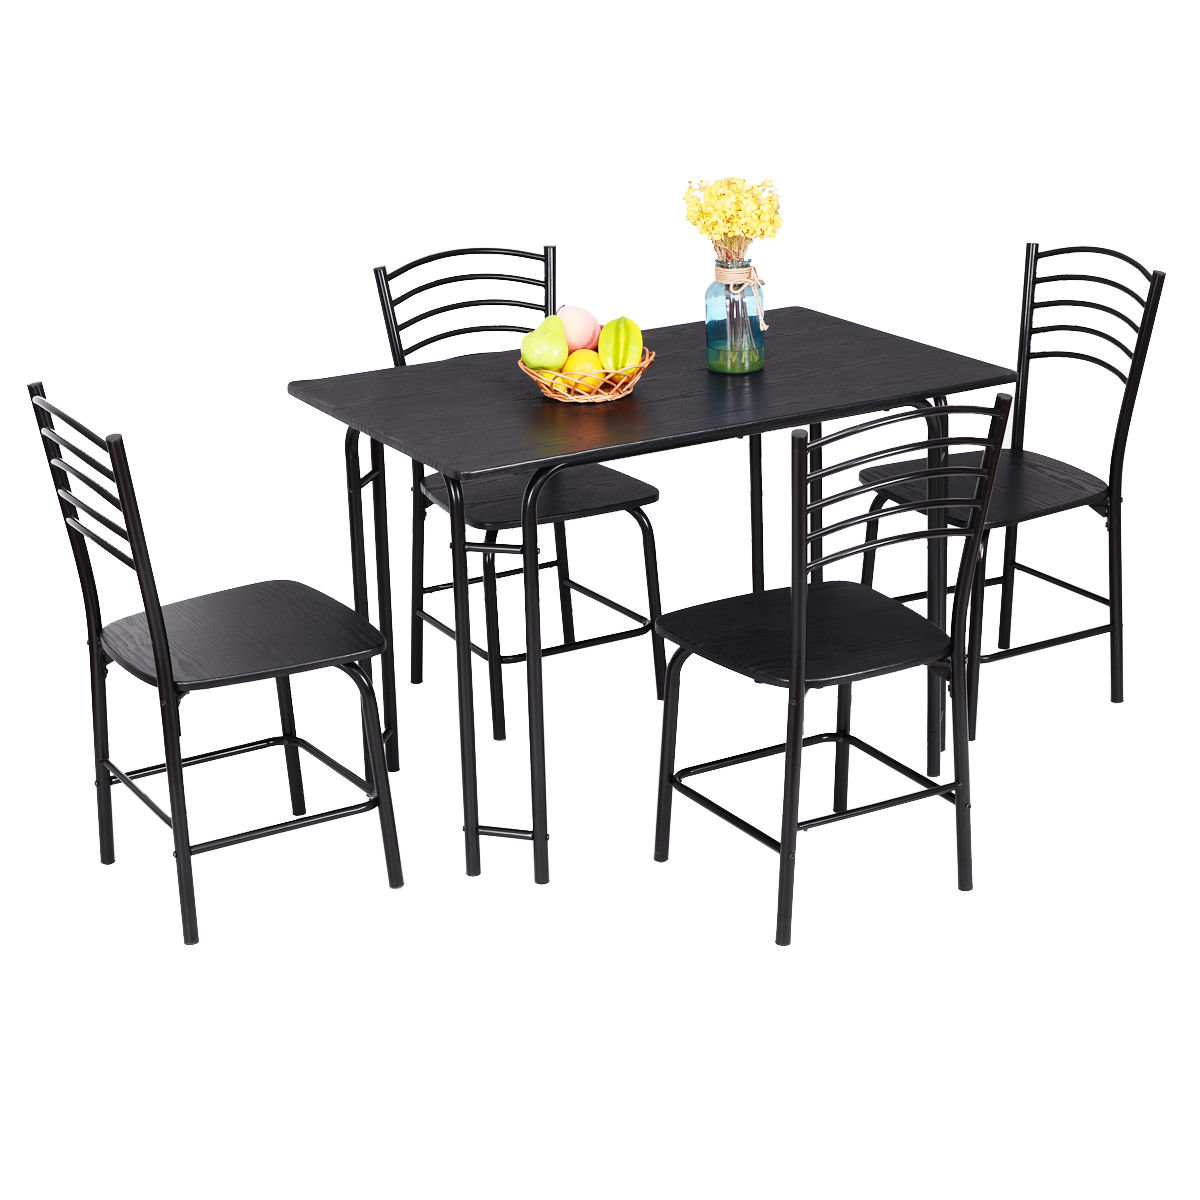 Ephraim 5 Piece Dining Set Intended For Newest Mulvey 5 Piece Dining Sets (Image 6 of 20)